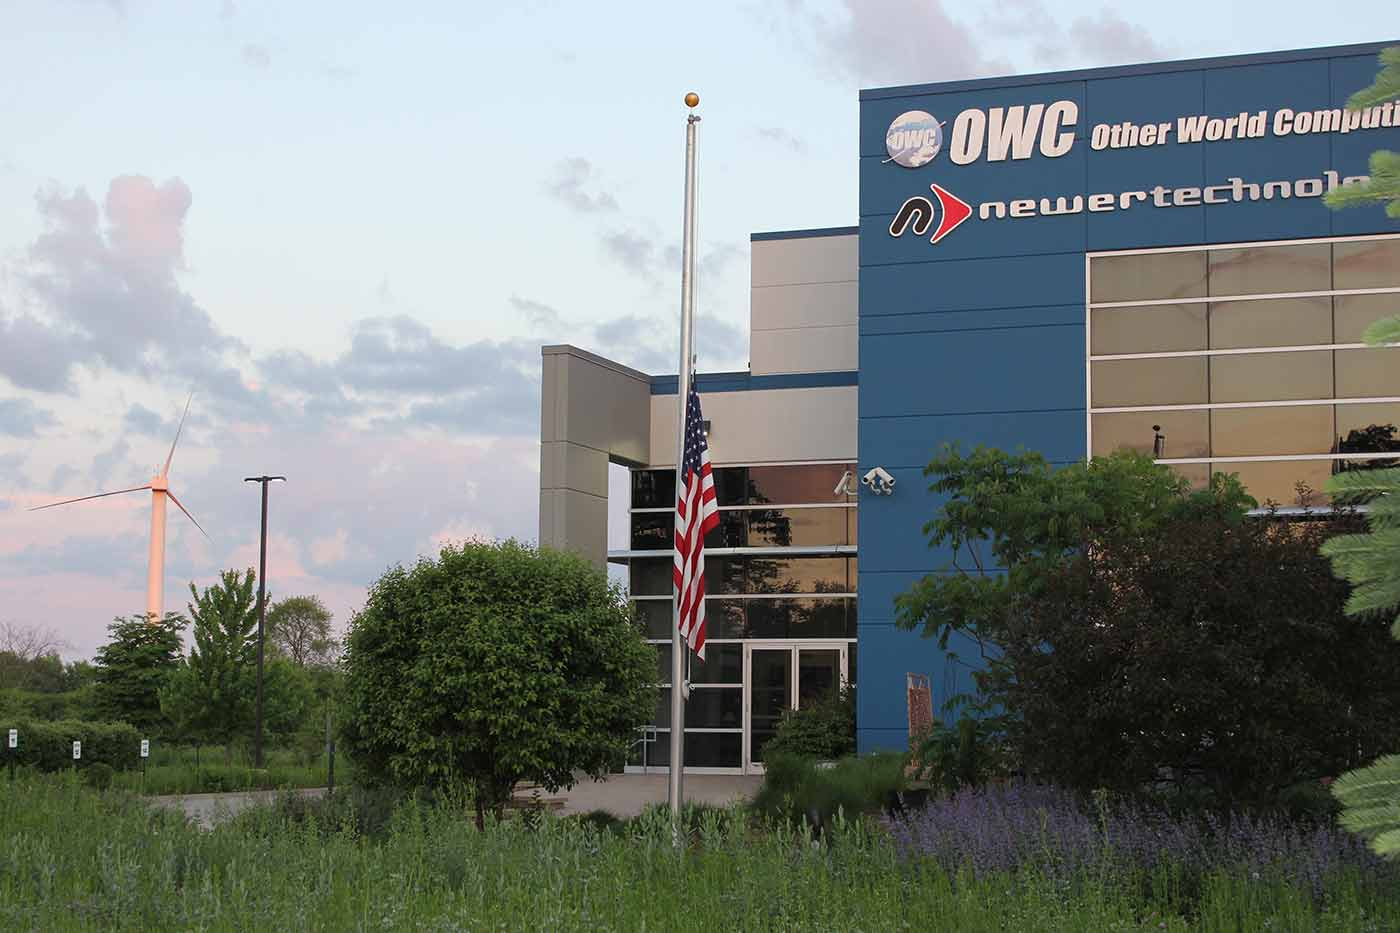 The American Flag lowered to half-mast at dawn at OWC headquarters in Woodstock, IL.